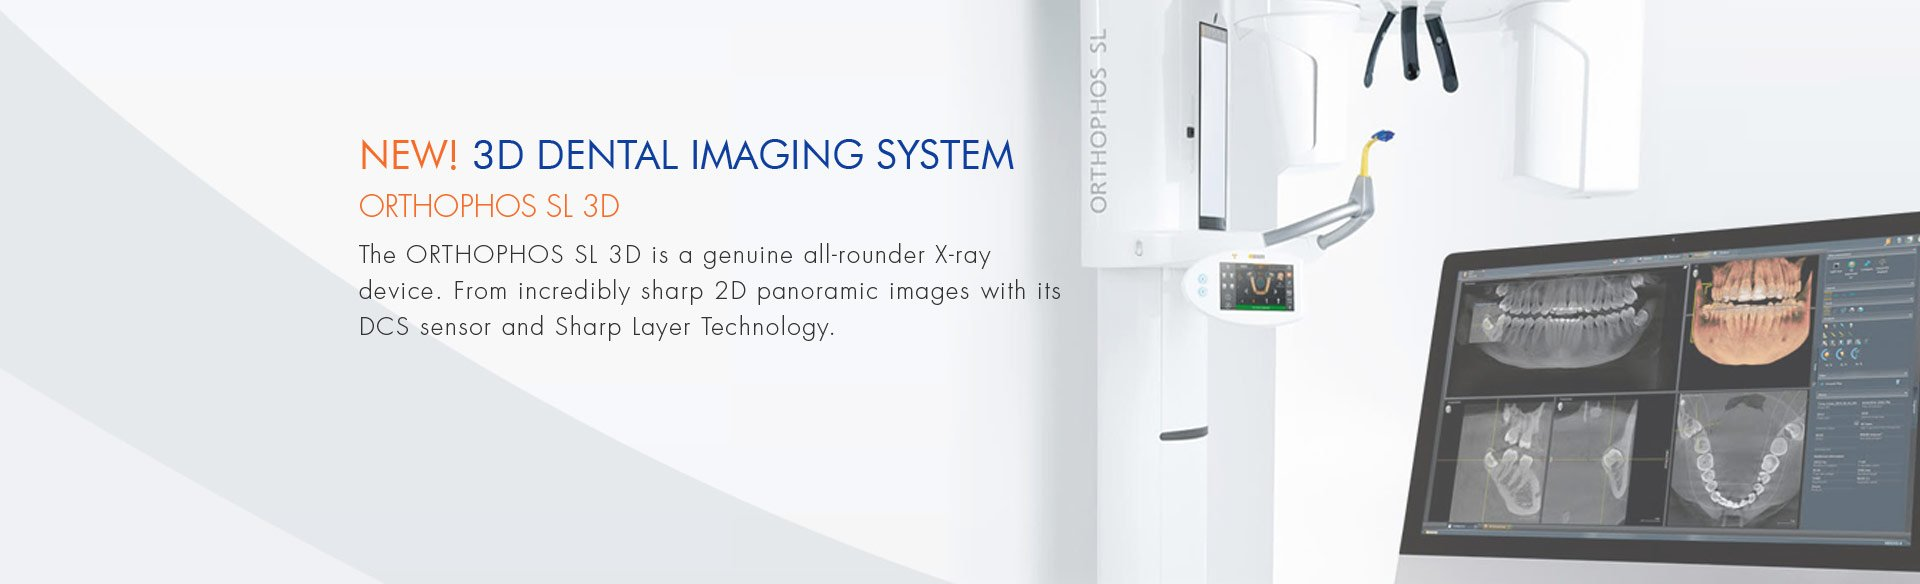 3D Dental Imaging System